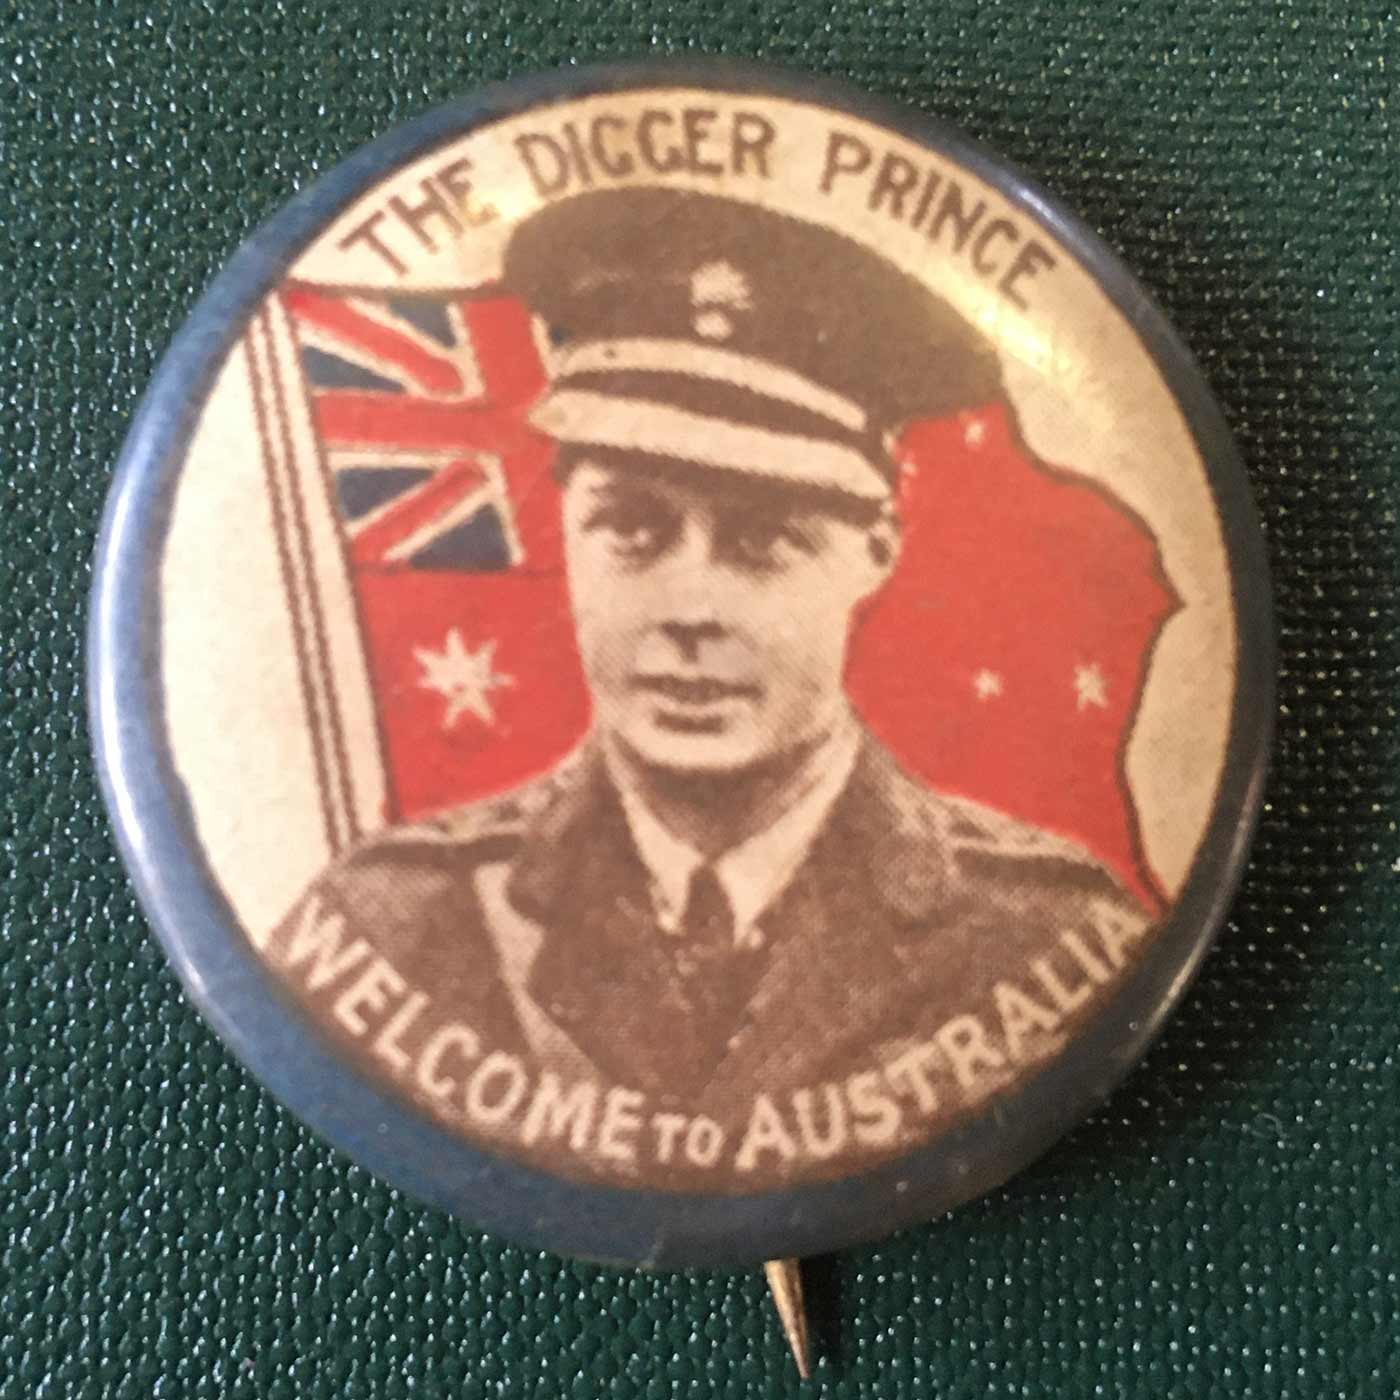 Colour photograph of a badge with an illustration of Prince Edward in front of the British flag. There is a label with the text: THE DIGGER PRINCE / WELCOME TO AUSTRALIA. - click to view larger image